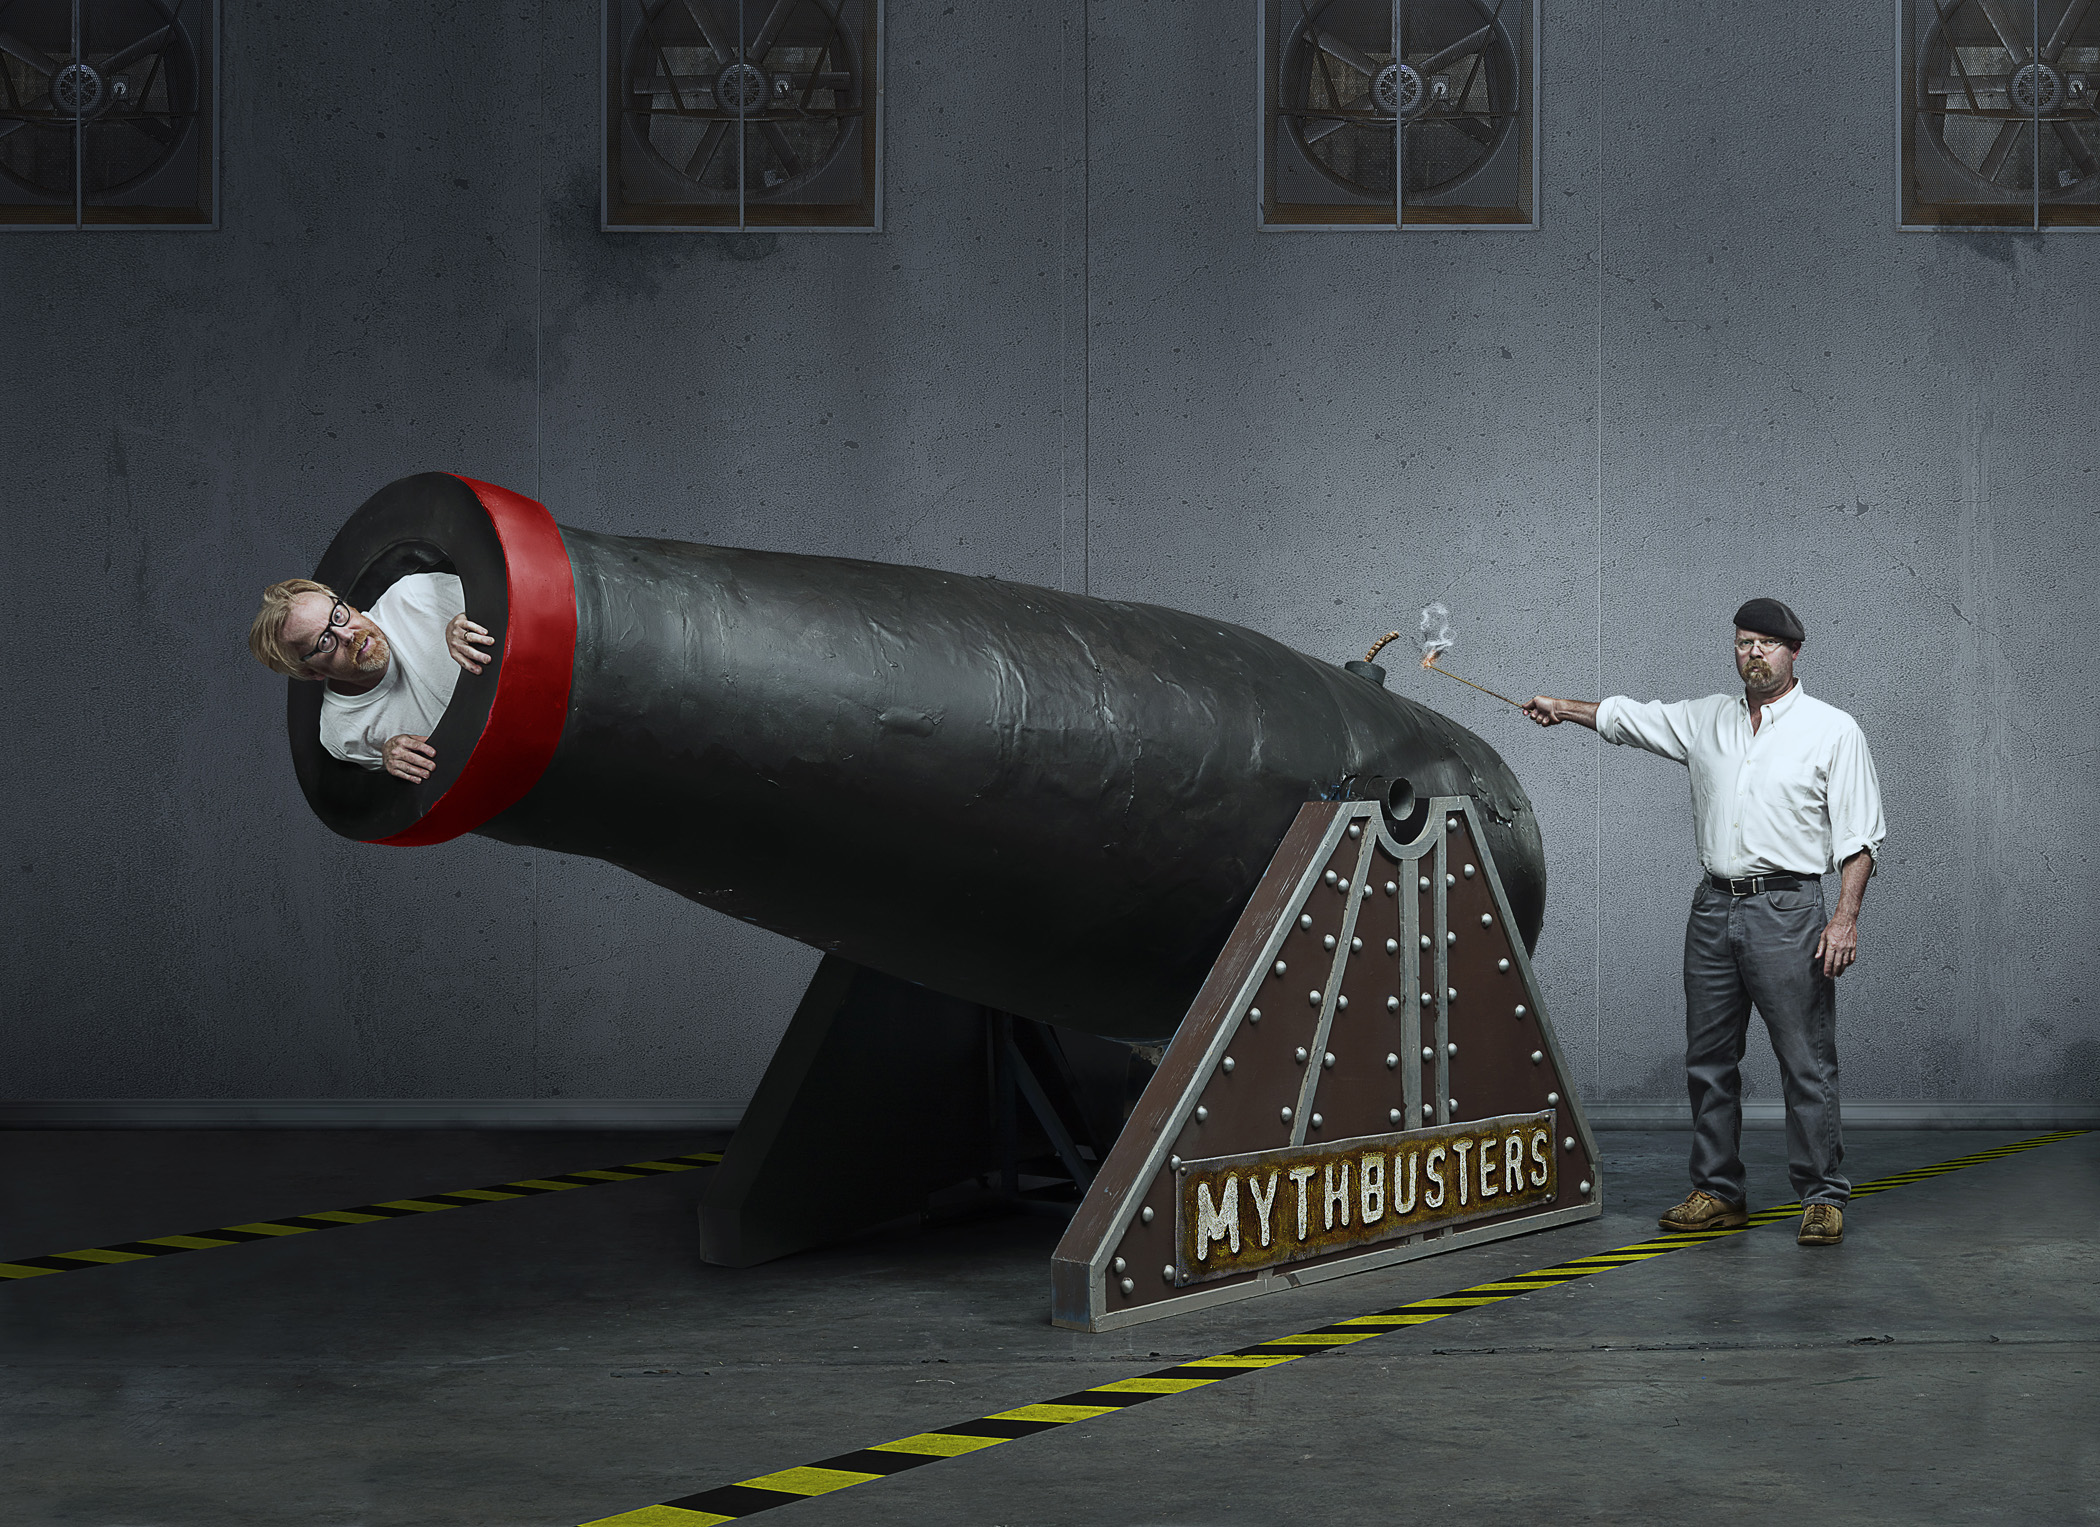 Myth confirmed mosi in tampa to host the exclusive florida myth confirmed mosi in tampa to host the exclusive florida engagement mythbusters the explosive exhibition malvernweather